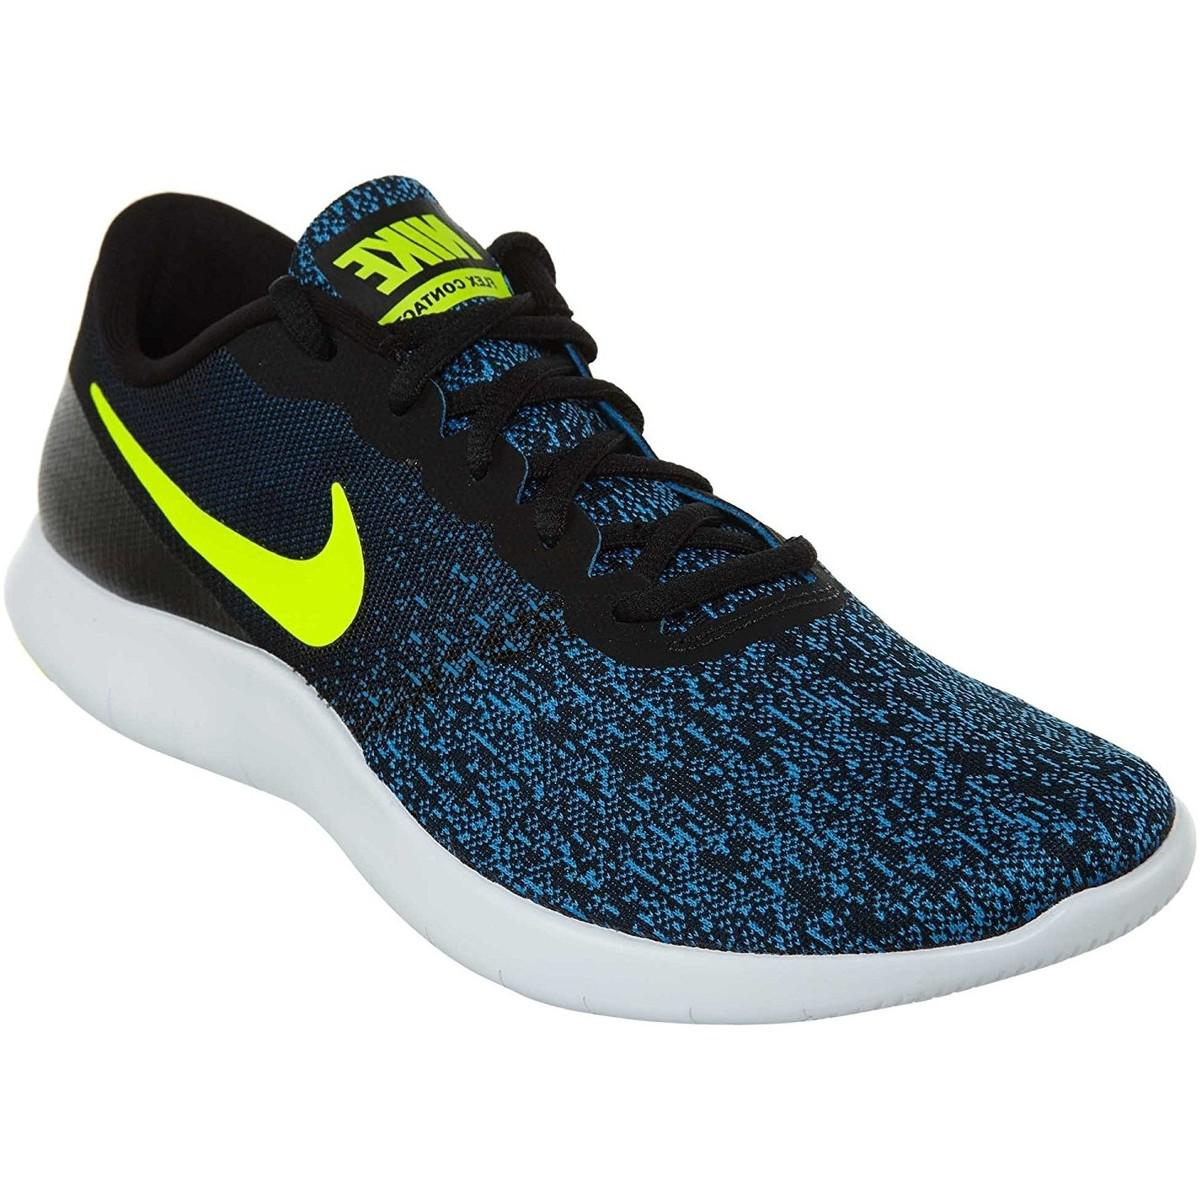 2d4a3e58a2691 Nike Flex Contact Running Shoe Men s Shoes (trainers) In Blue in ...